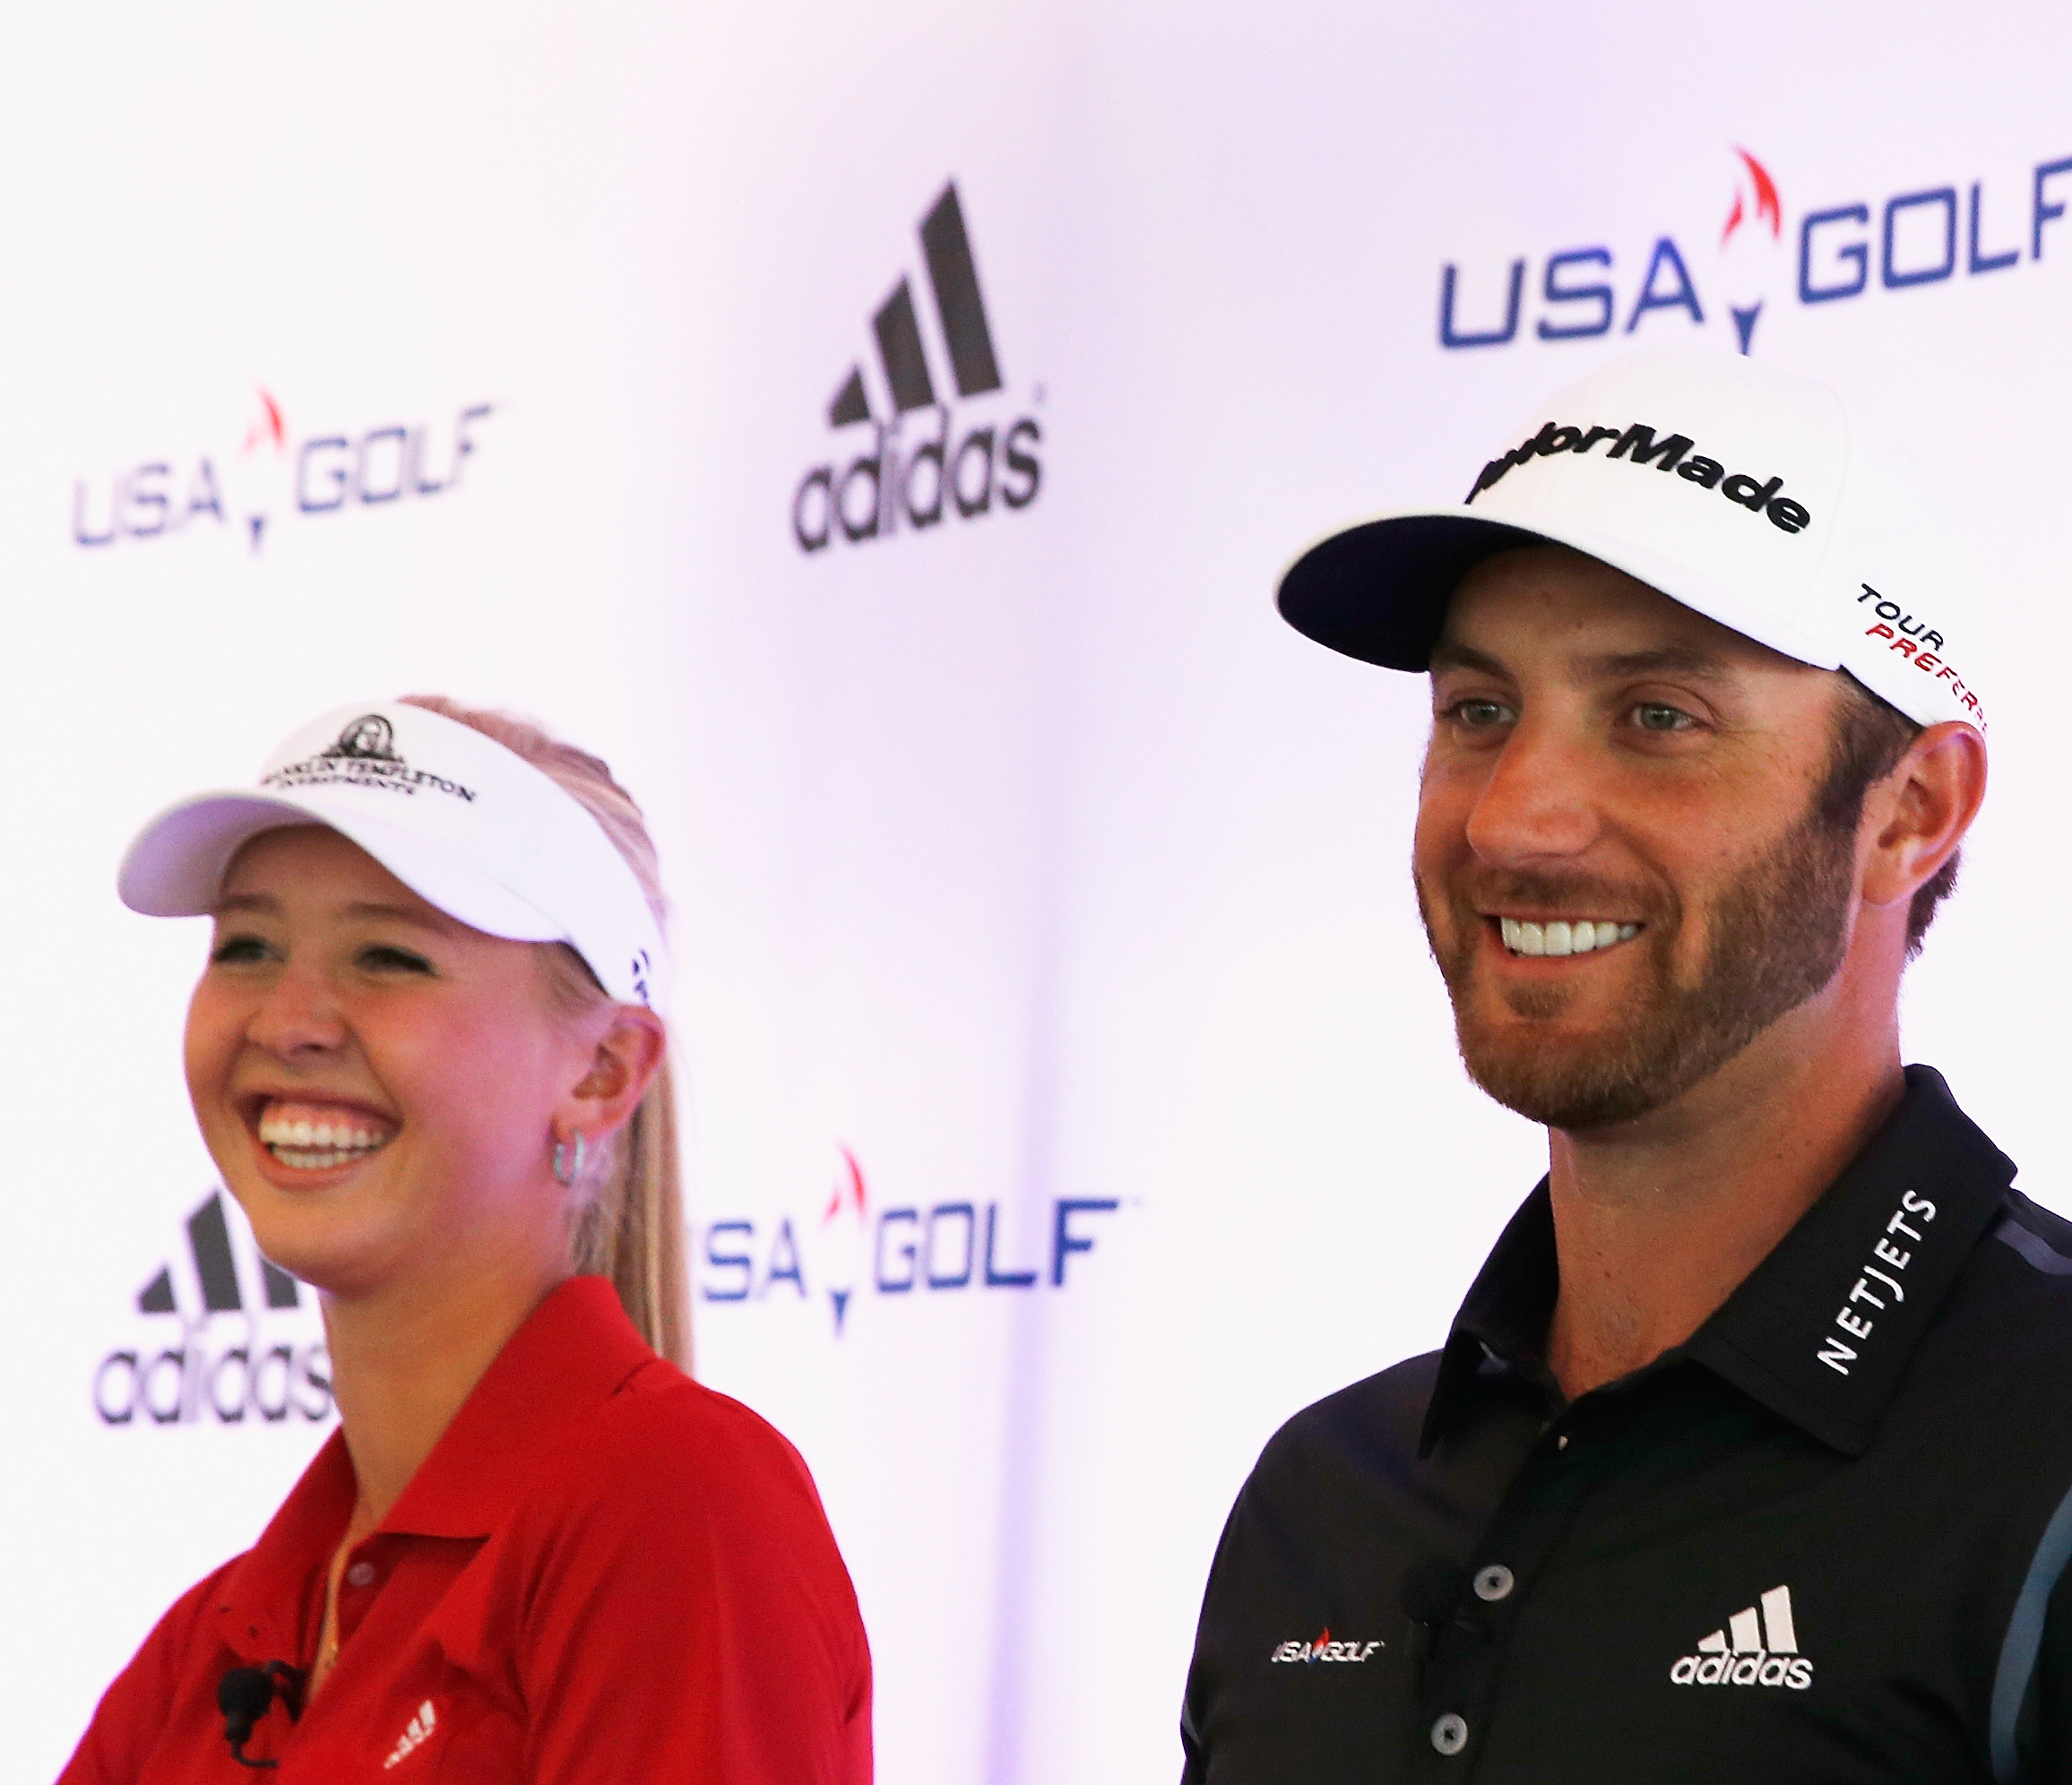 Adidas Golf Partners with USA Golf